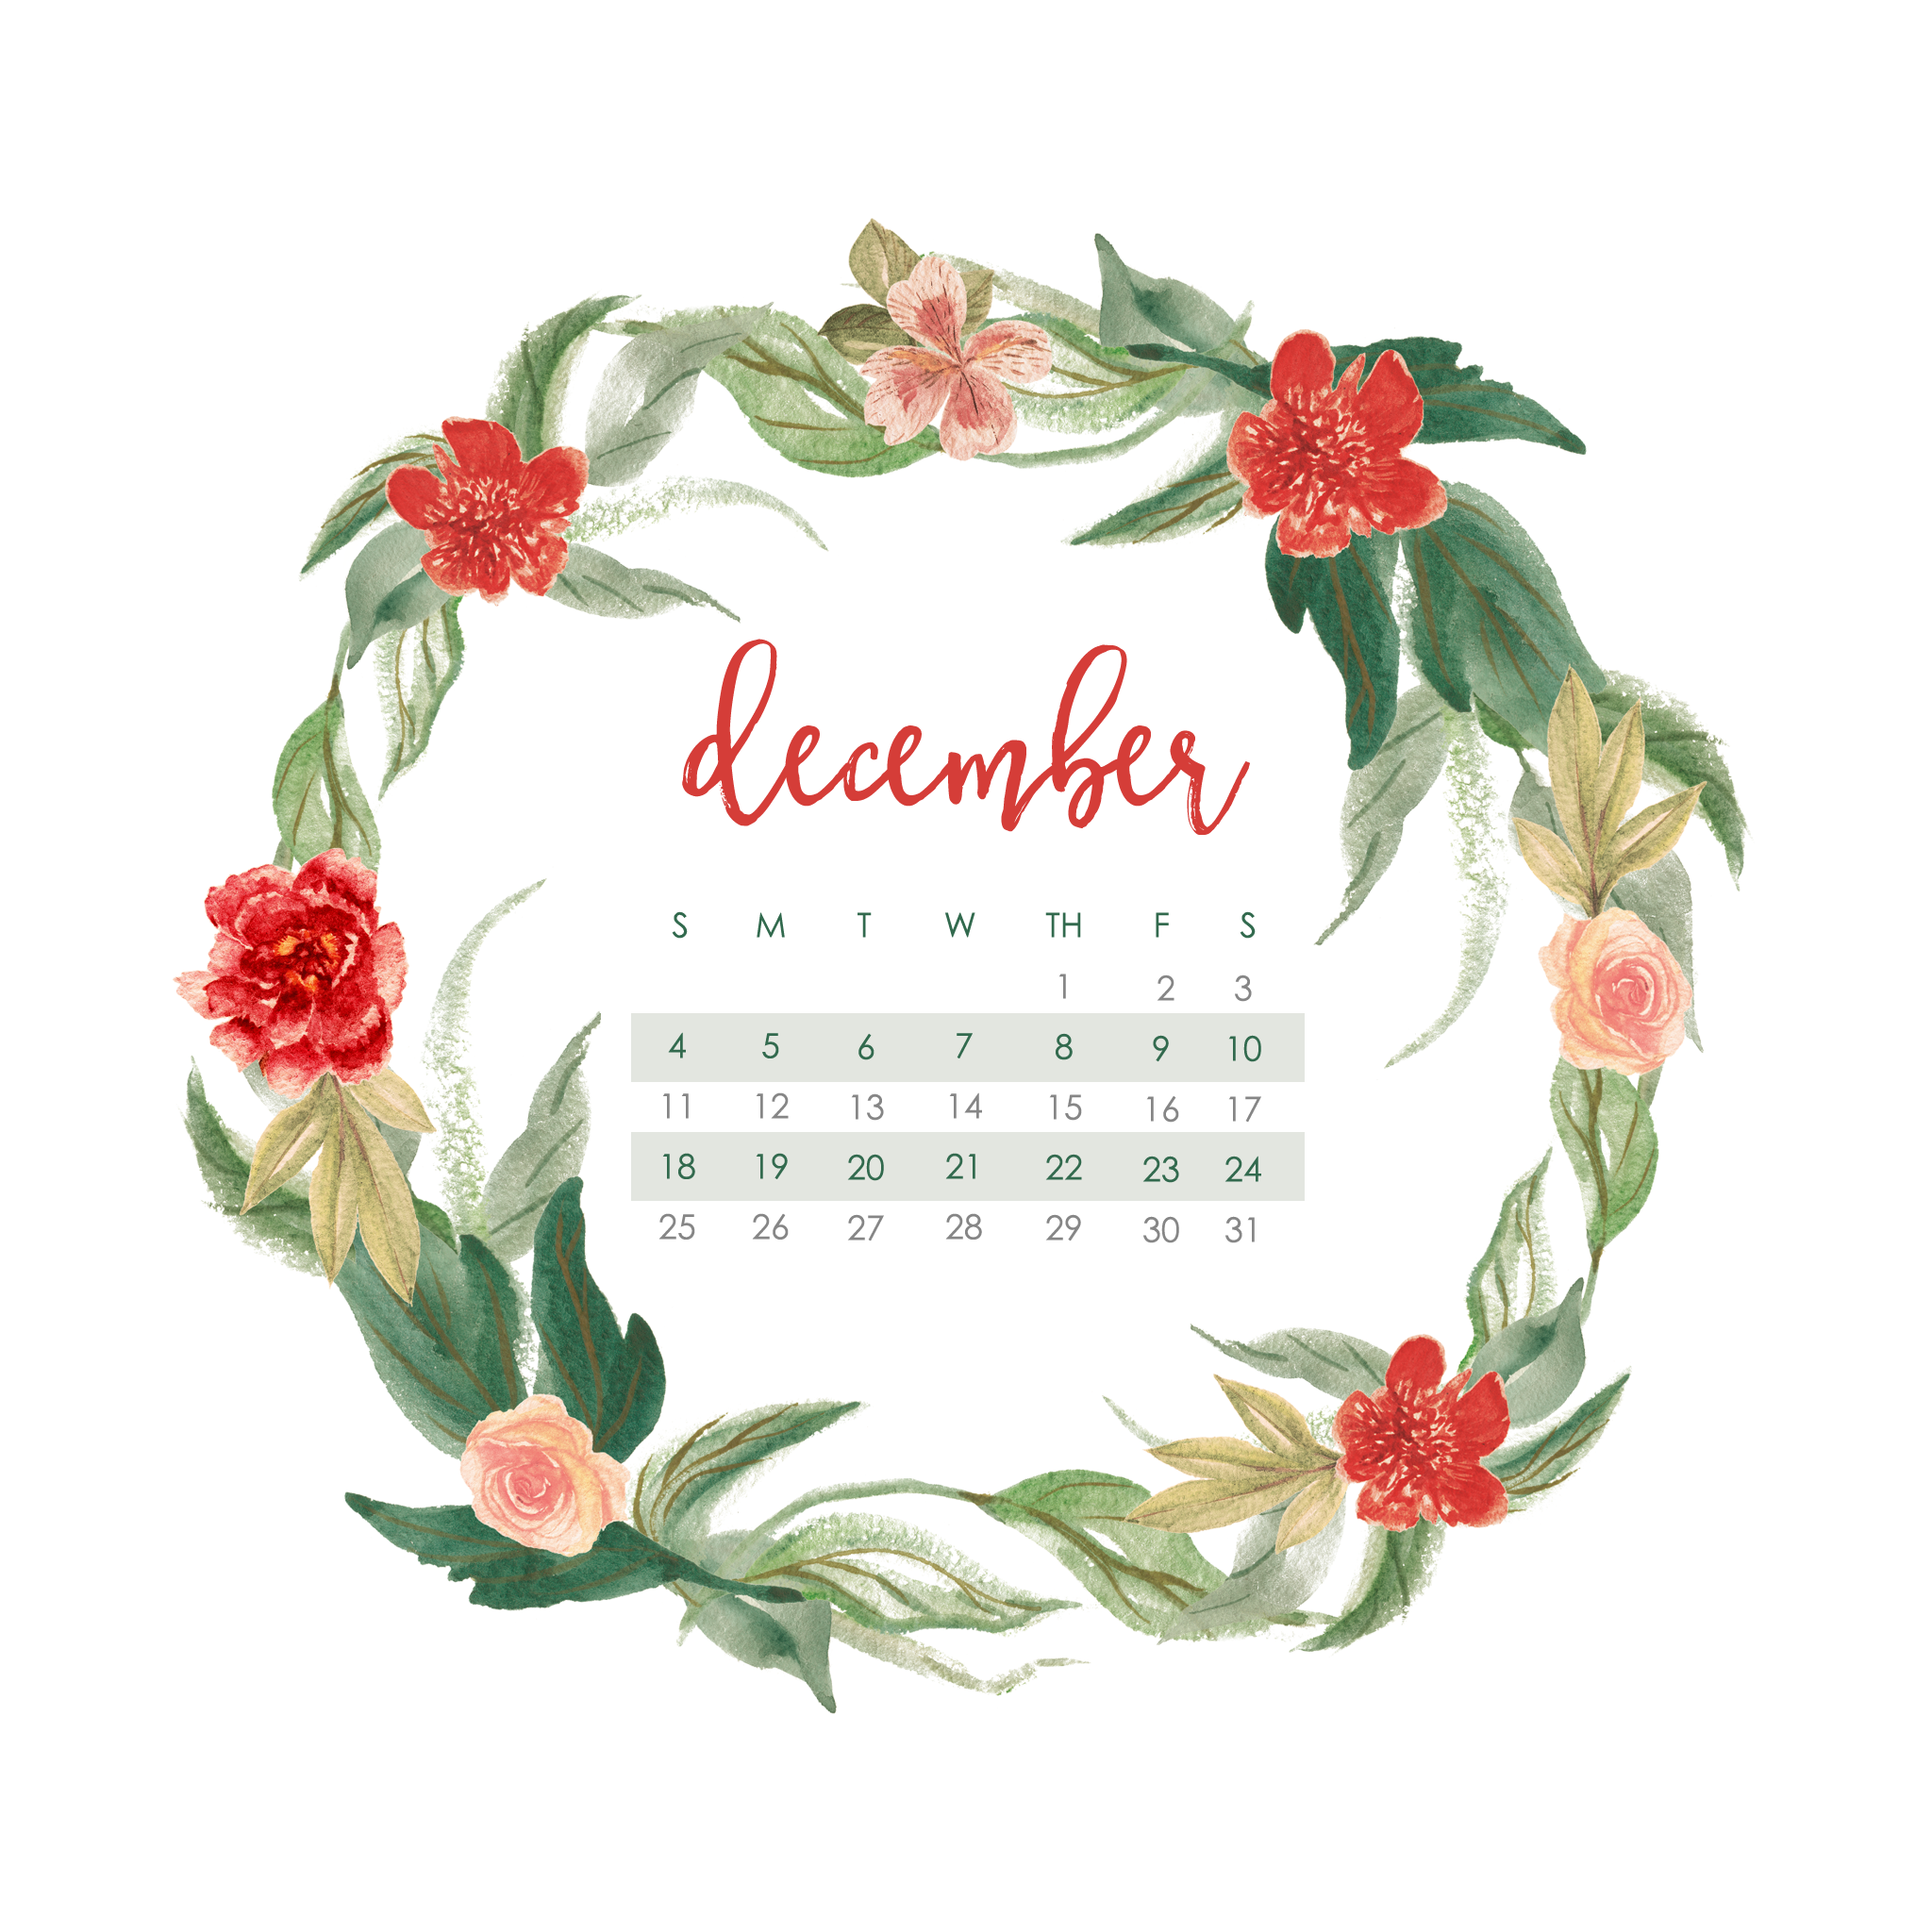 december calendar wallpaper - desktop & mobile calendar for 2016